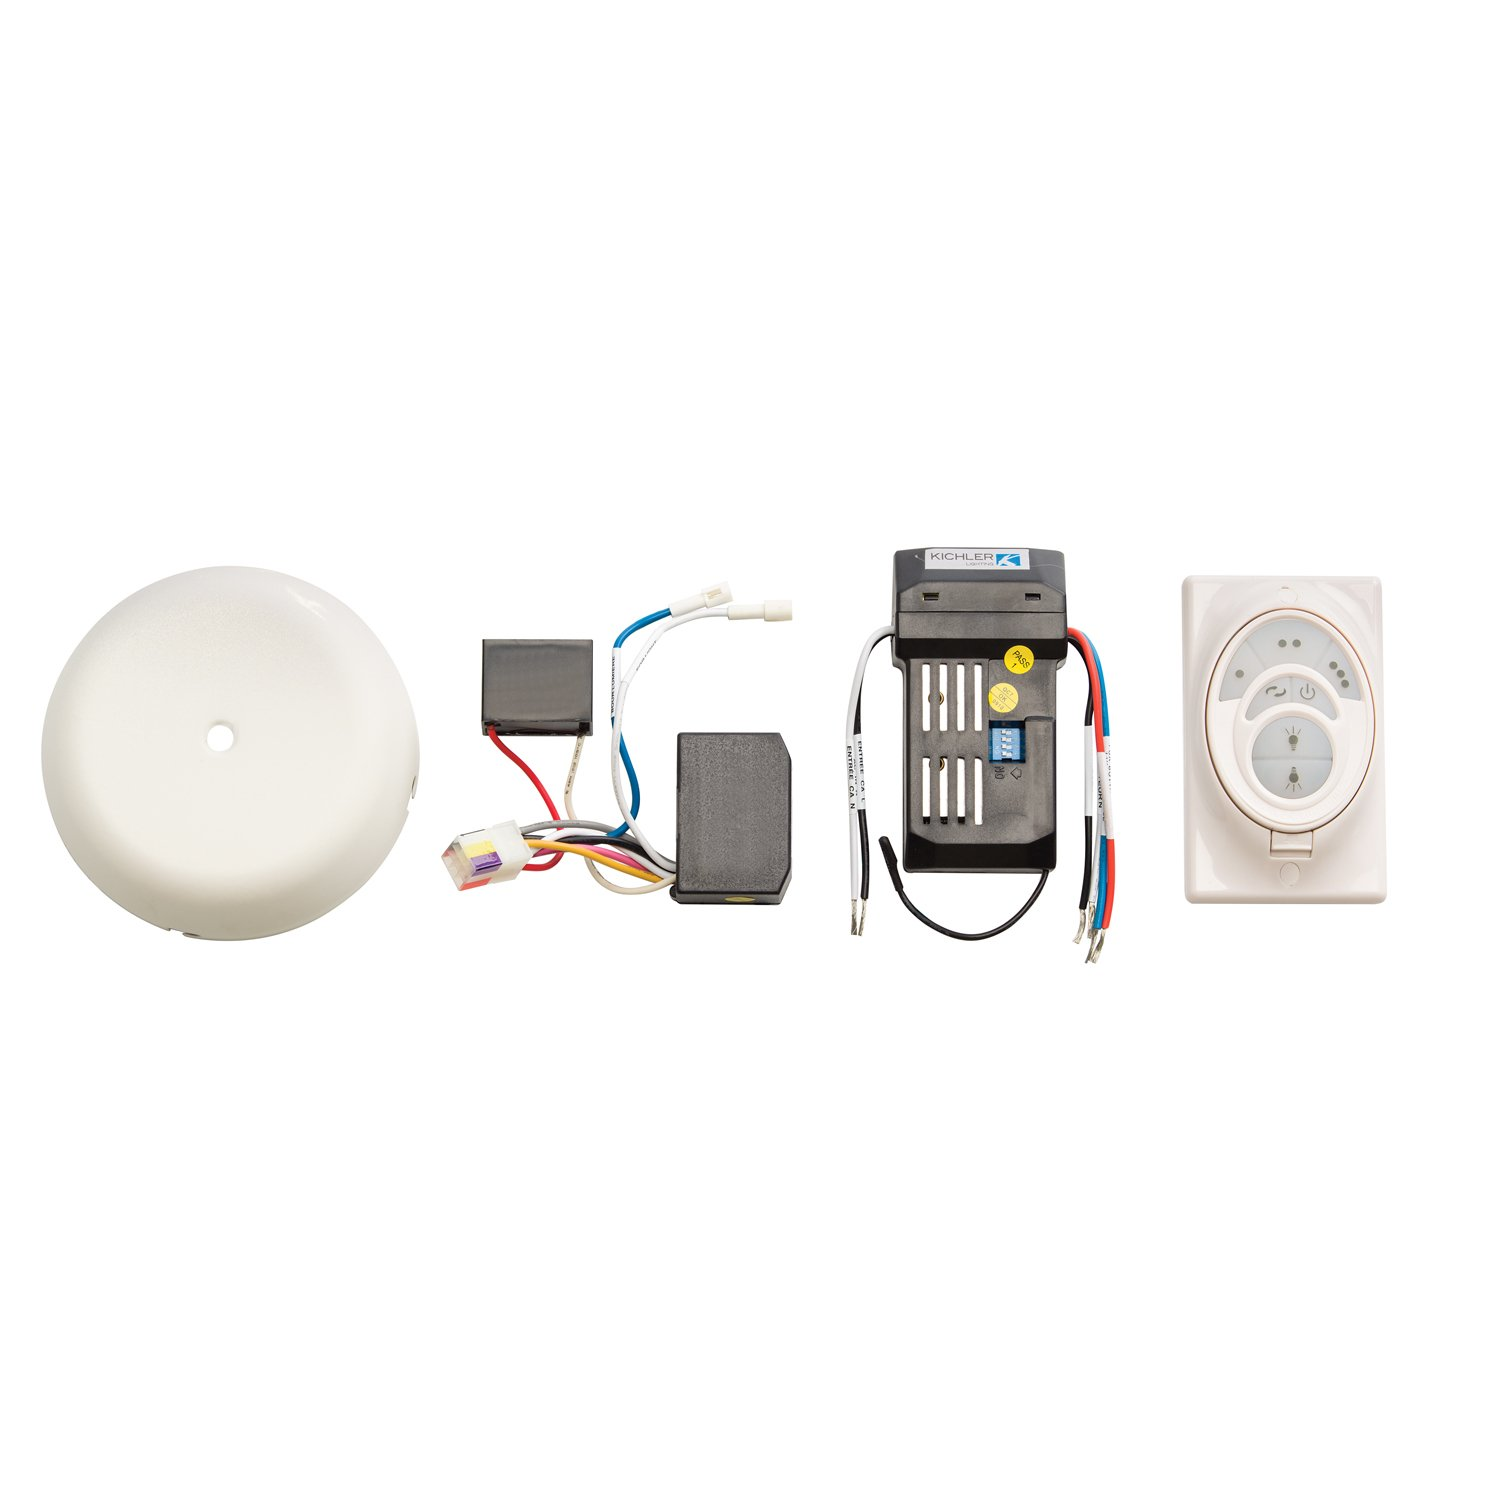 Kichler 3W500WH White Kichler Fan Company 3W500 CoolTouch Reversible Conversion Control System